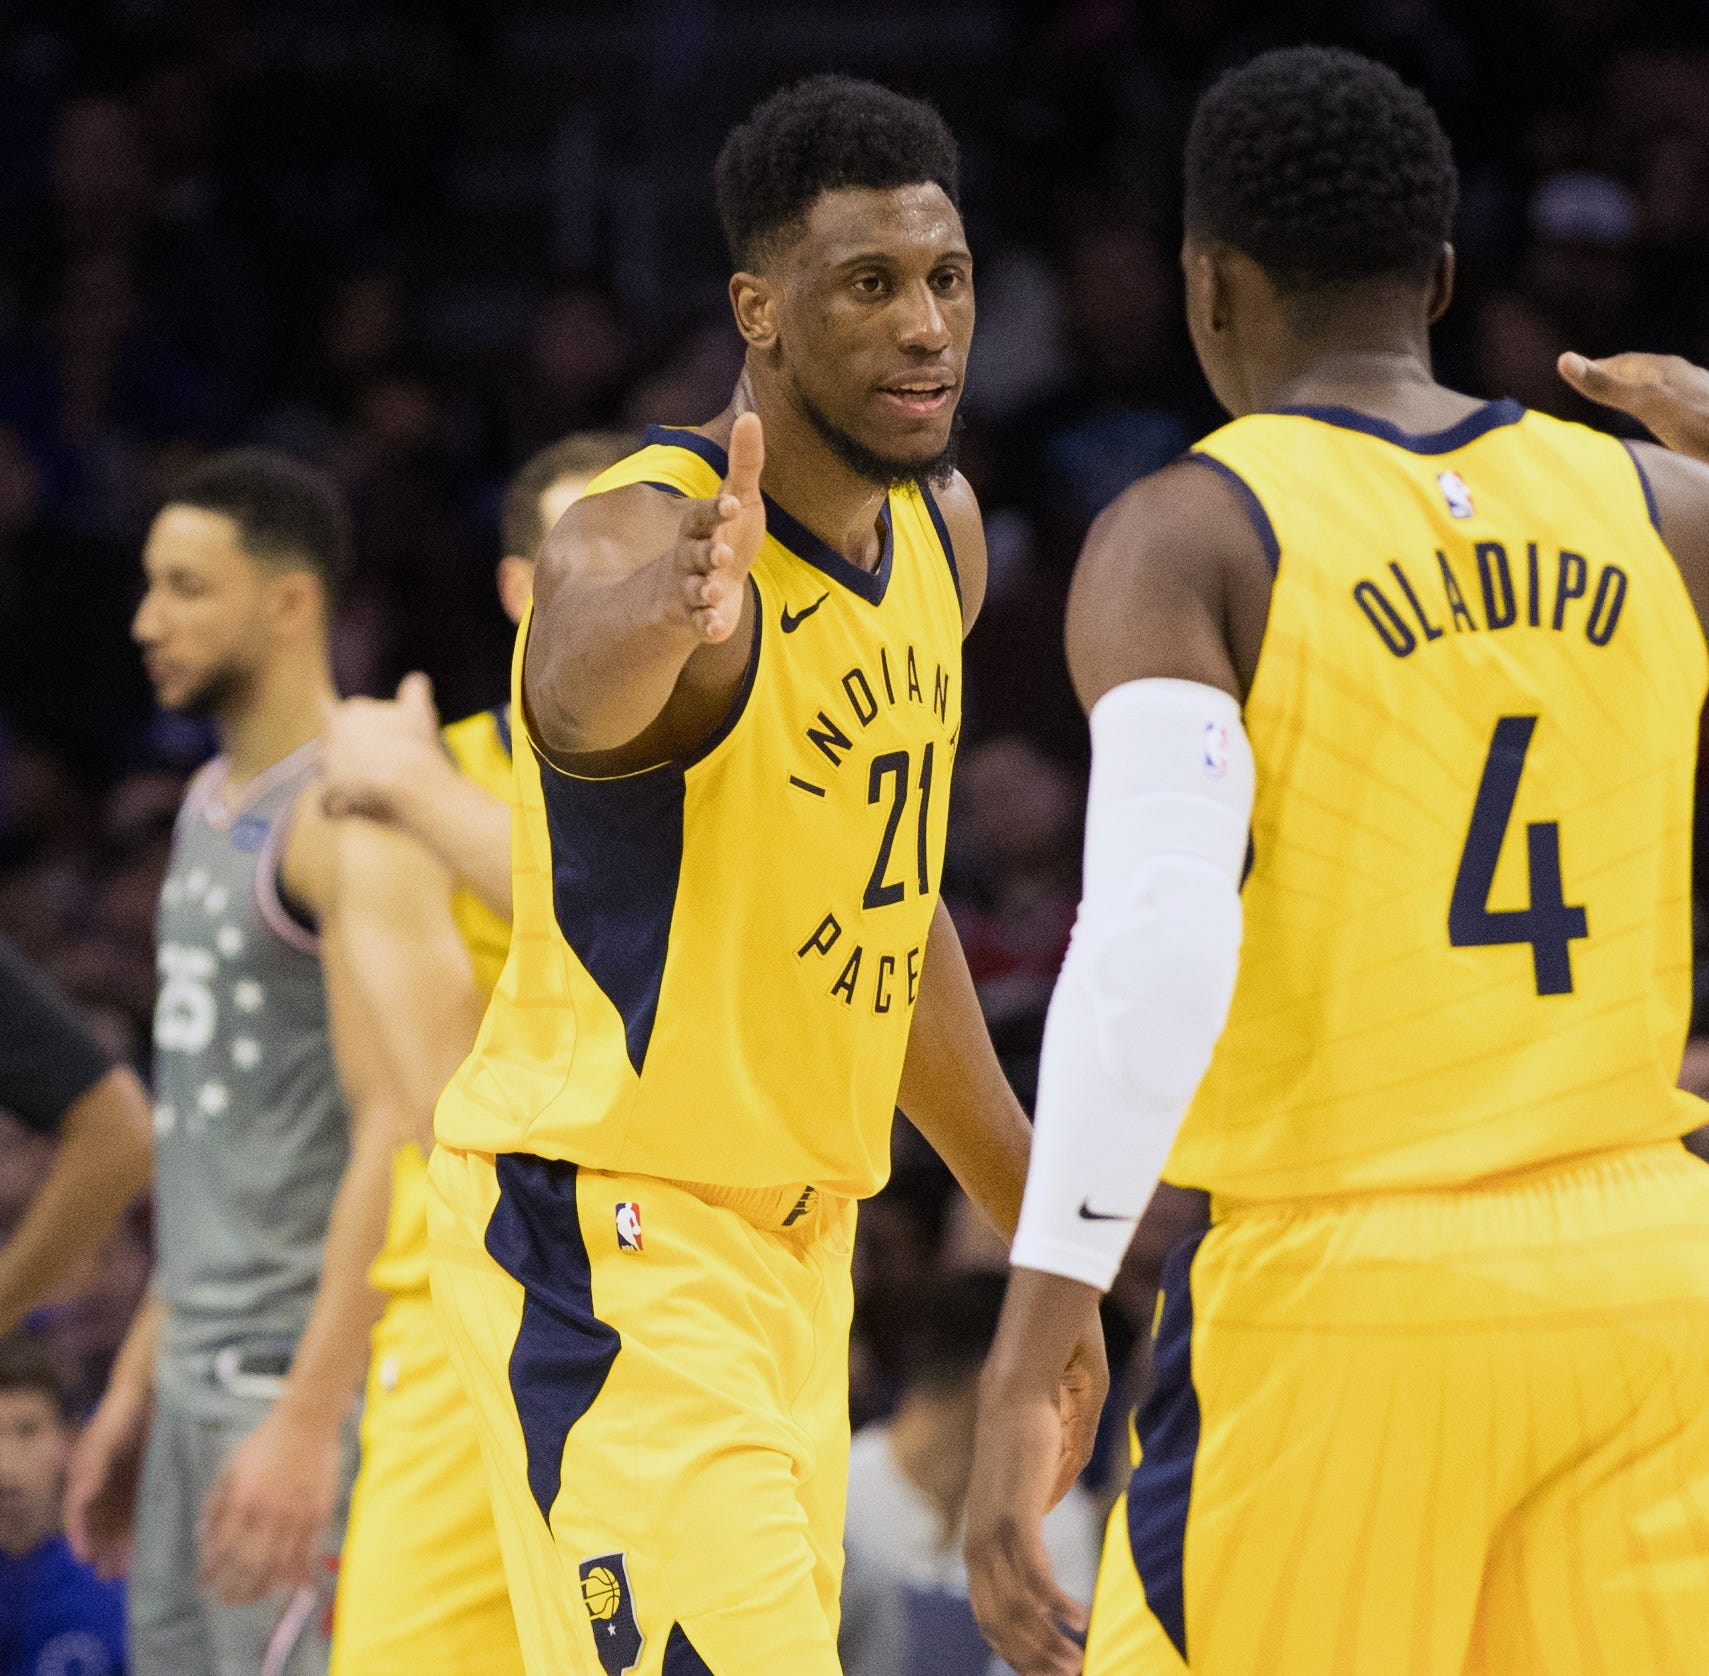 Oladipo doesn't need to be hero, because Pacers don't need saving